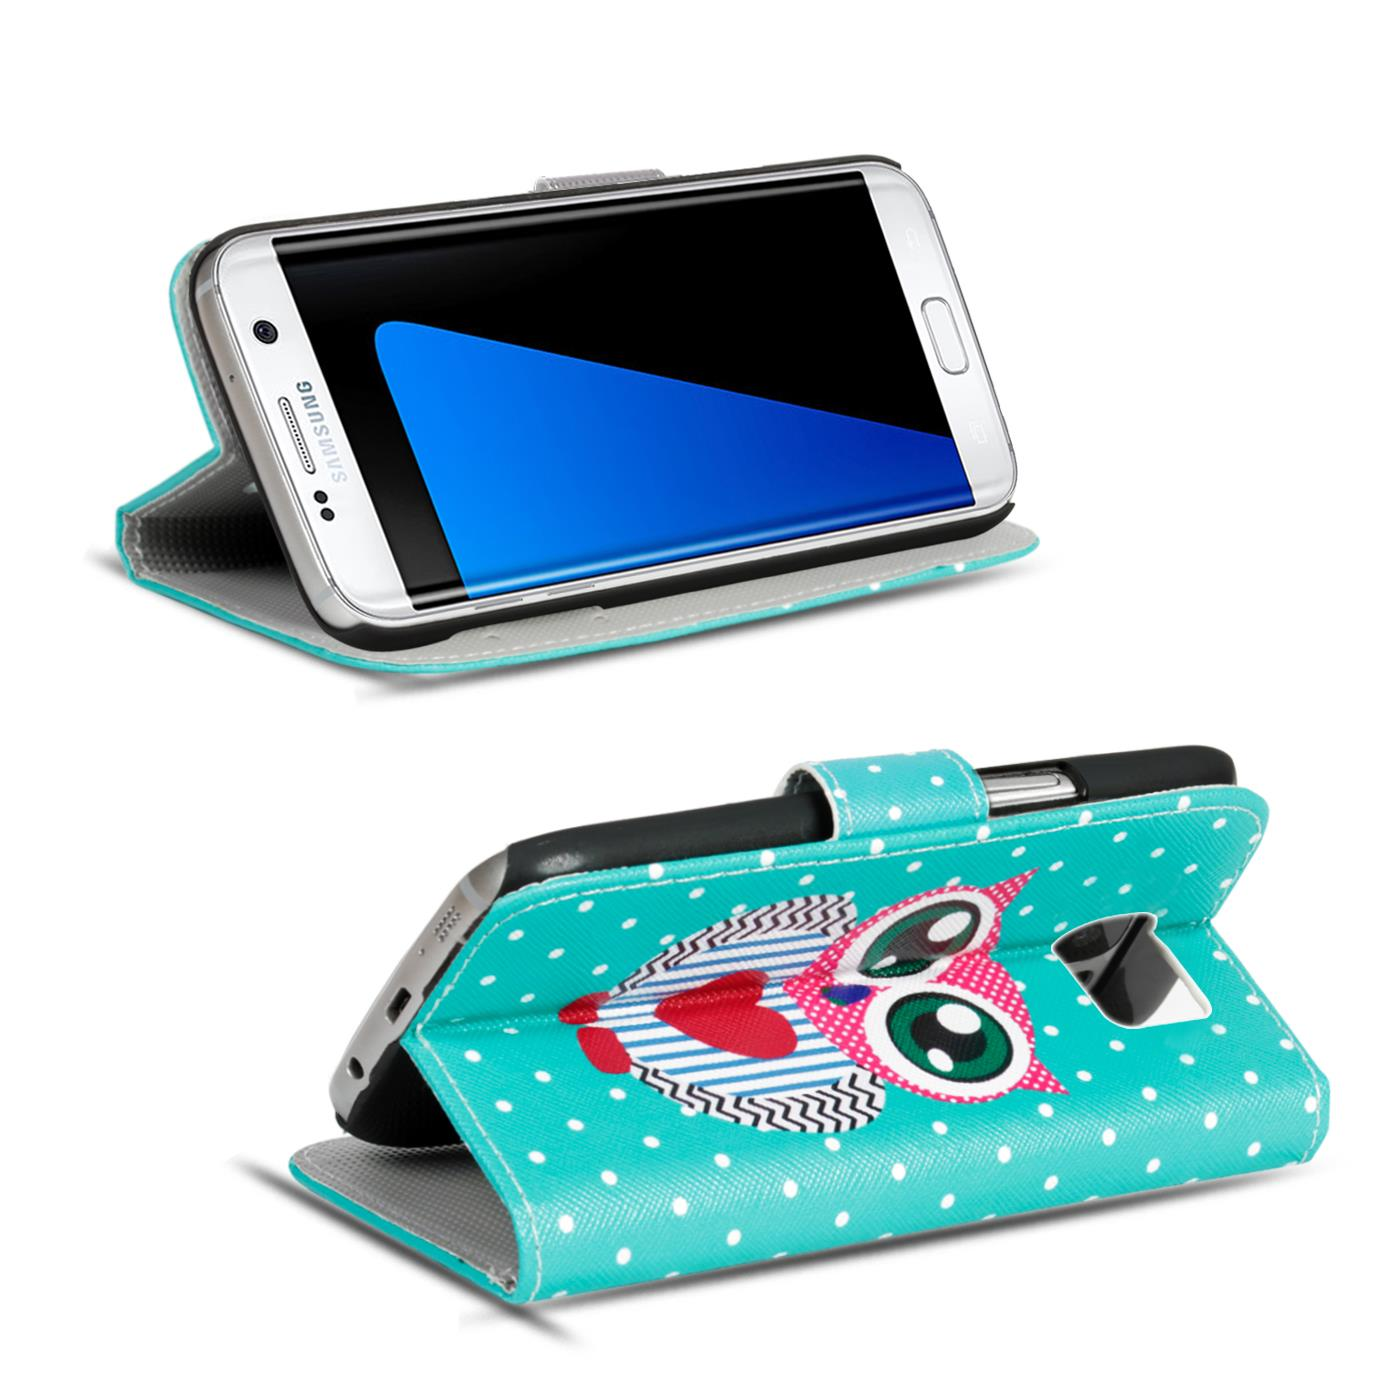 Design-Book-Wallet-Case-for-Samsung-Galaxy-S7-Edge-PU-Leather-Flip-Cover-Holder thumbnail 84